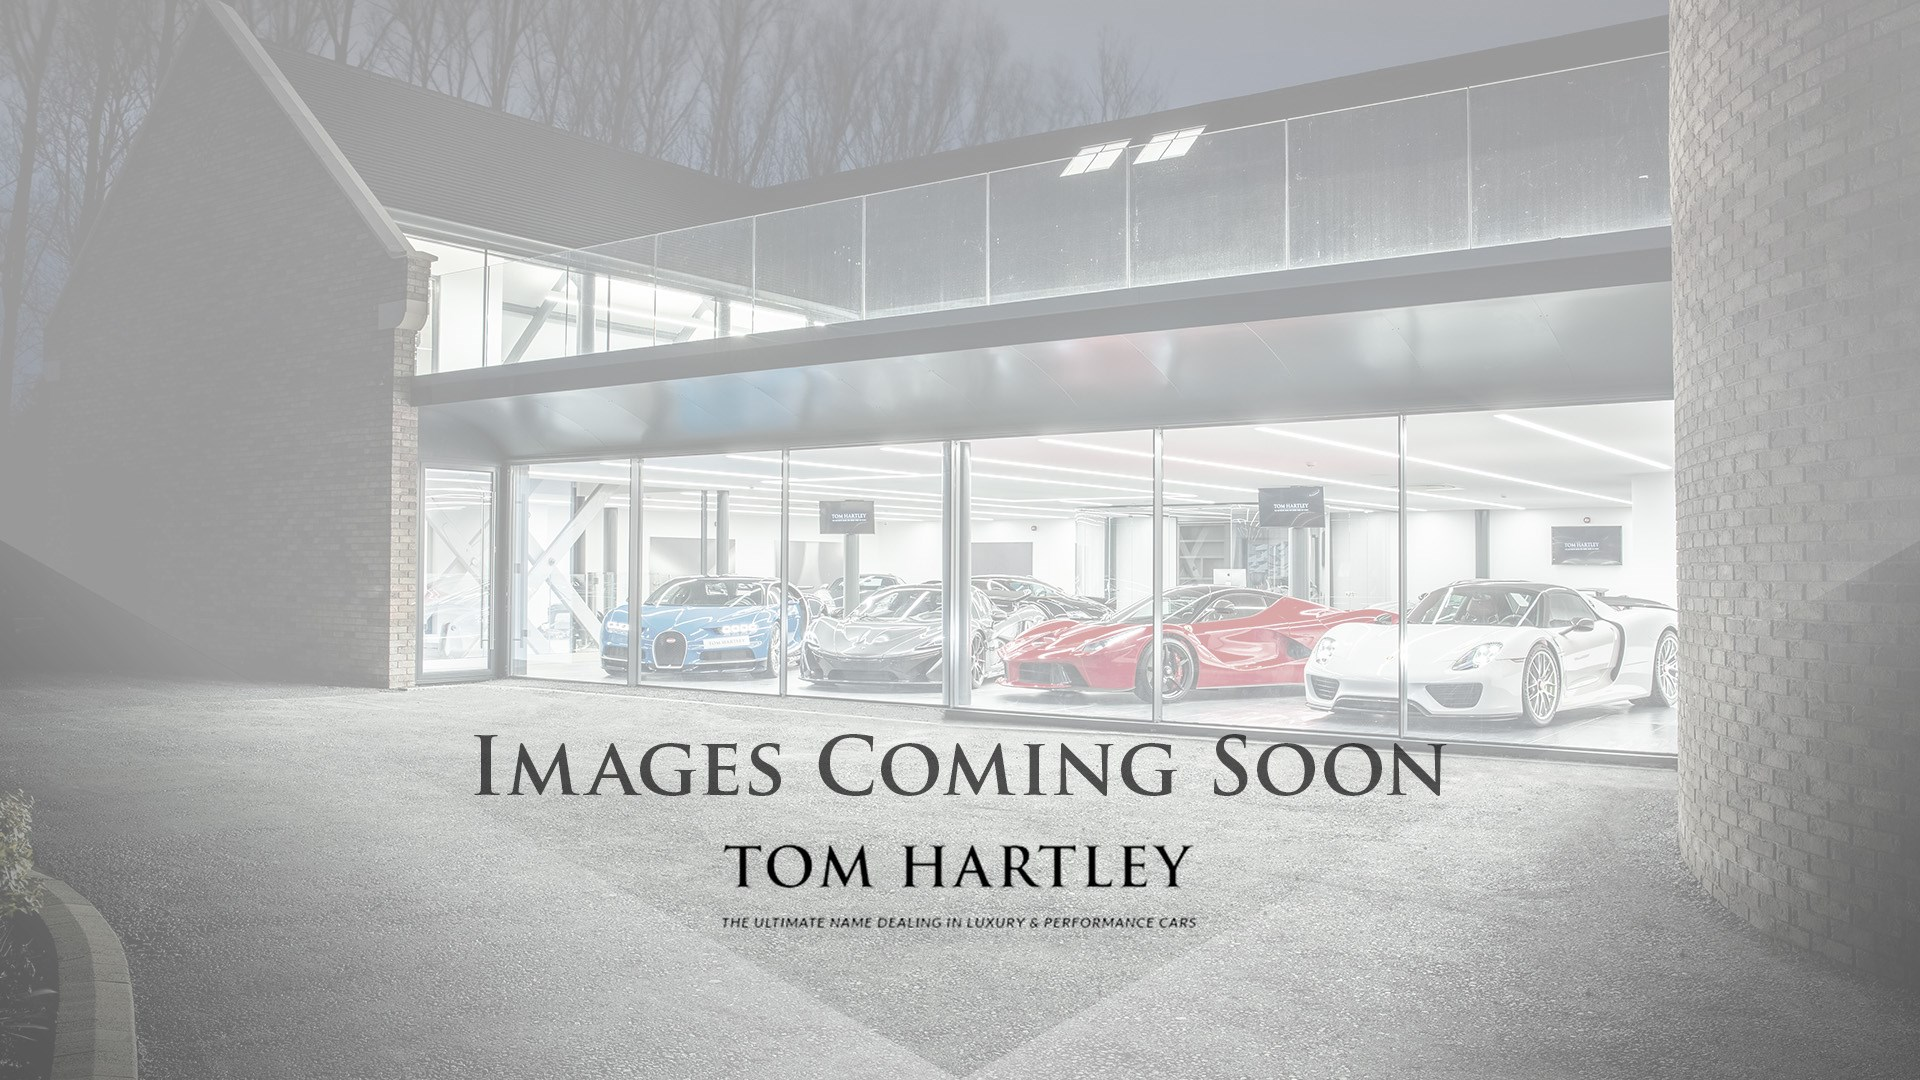 Used 2019 Land Rover Range Rover Sport SVR at Tom Hartley